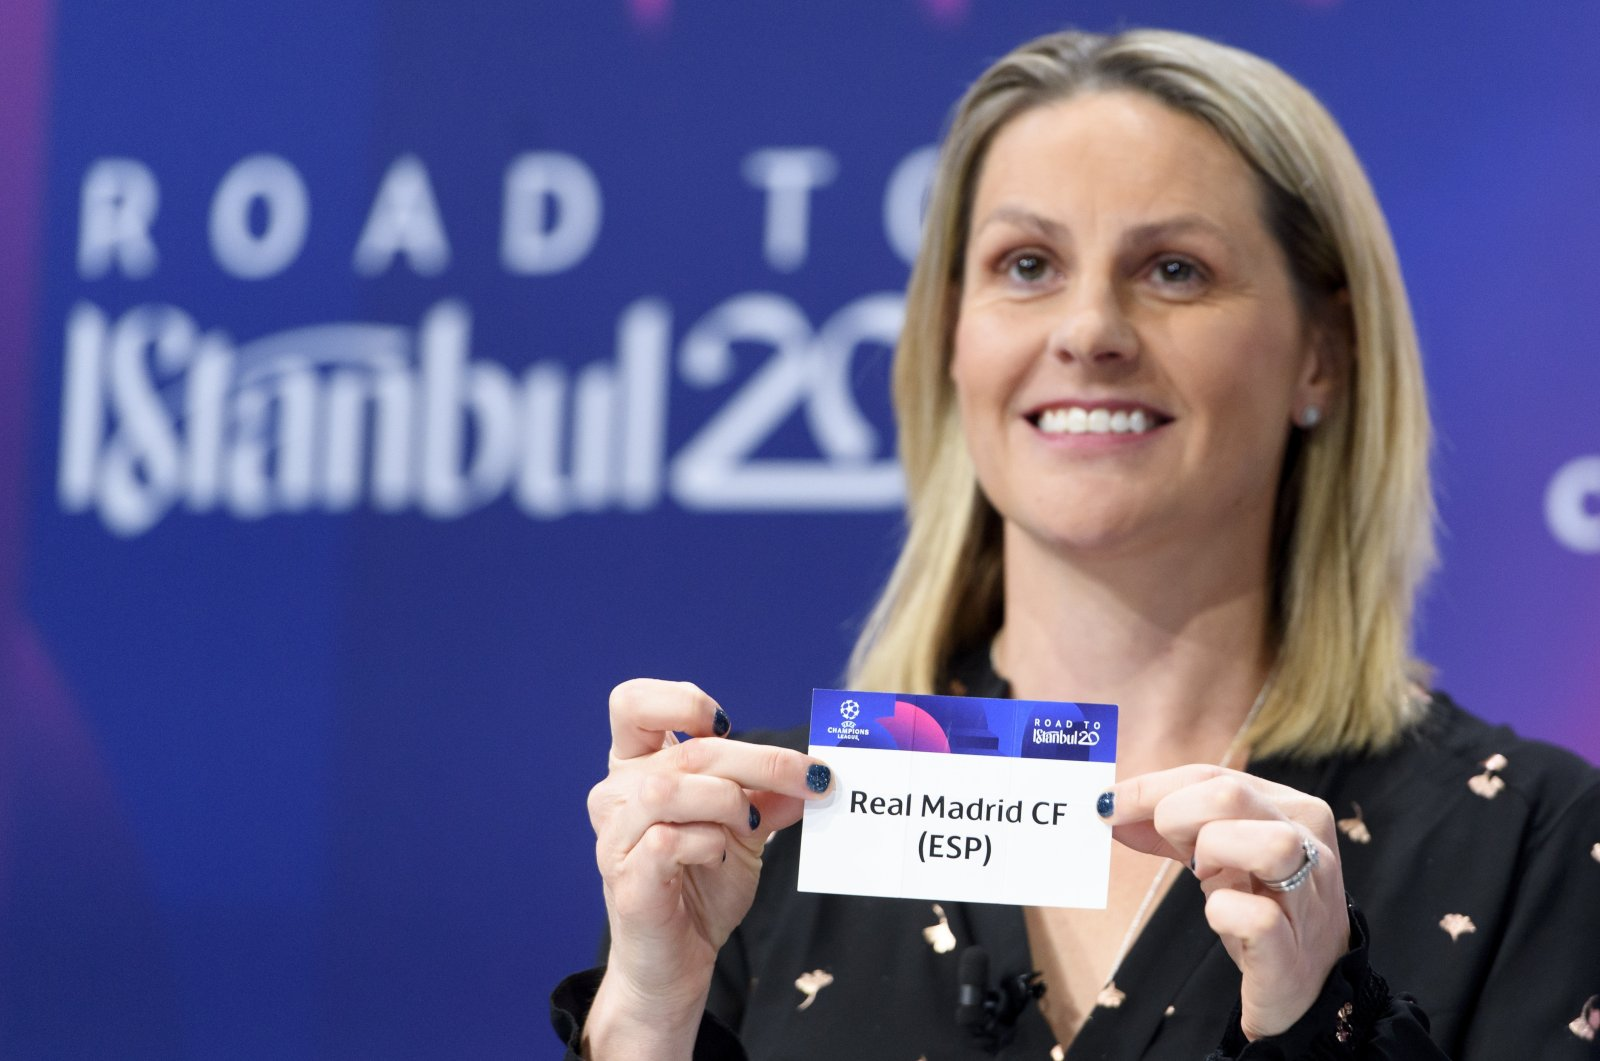 British football player Kelly Smith shows the ticket of Real Madrid during a UEFA Champions League draw in Nyon, Switzerland, Dec. 16, 2019. (AP Photo)